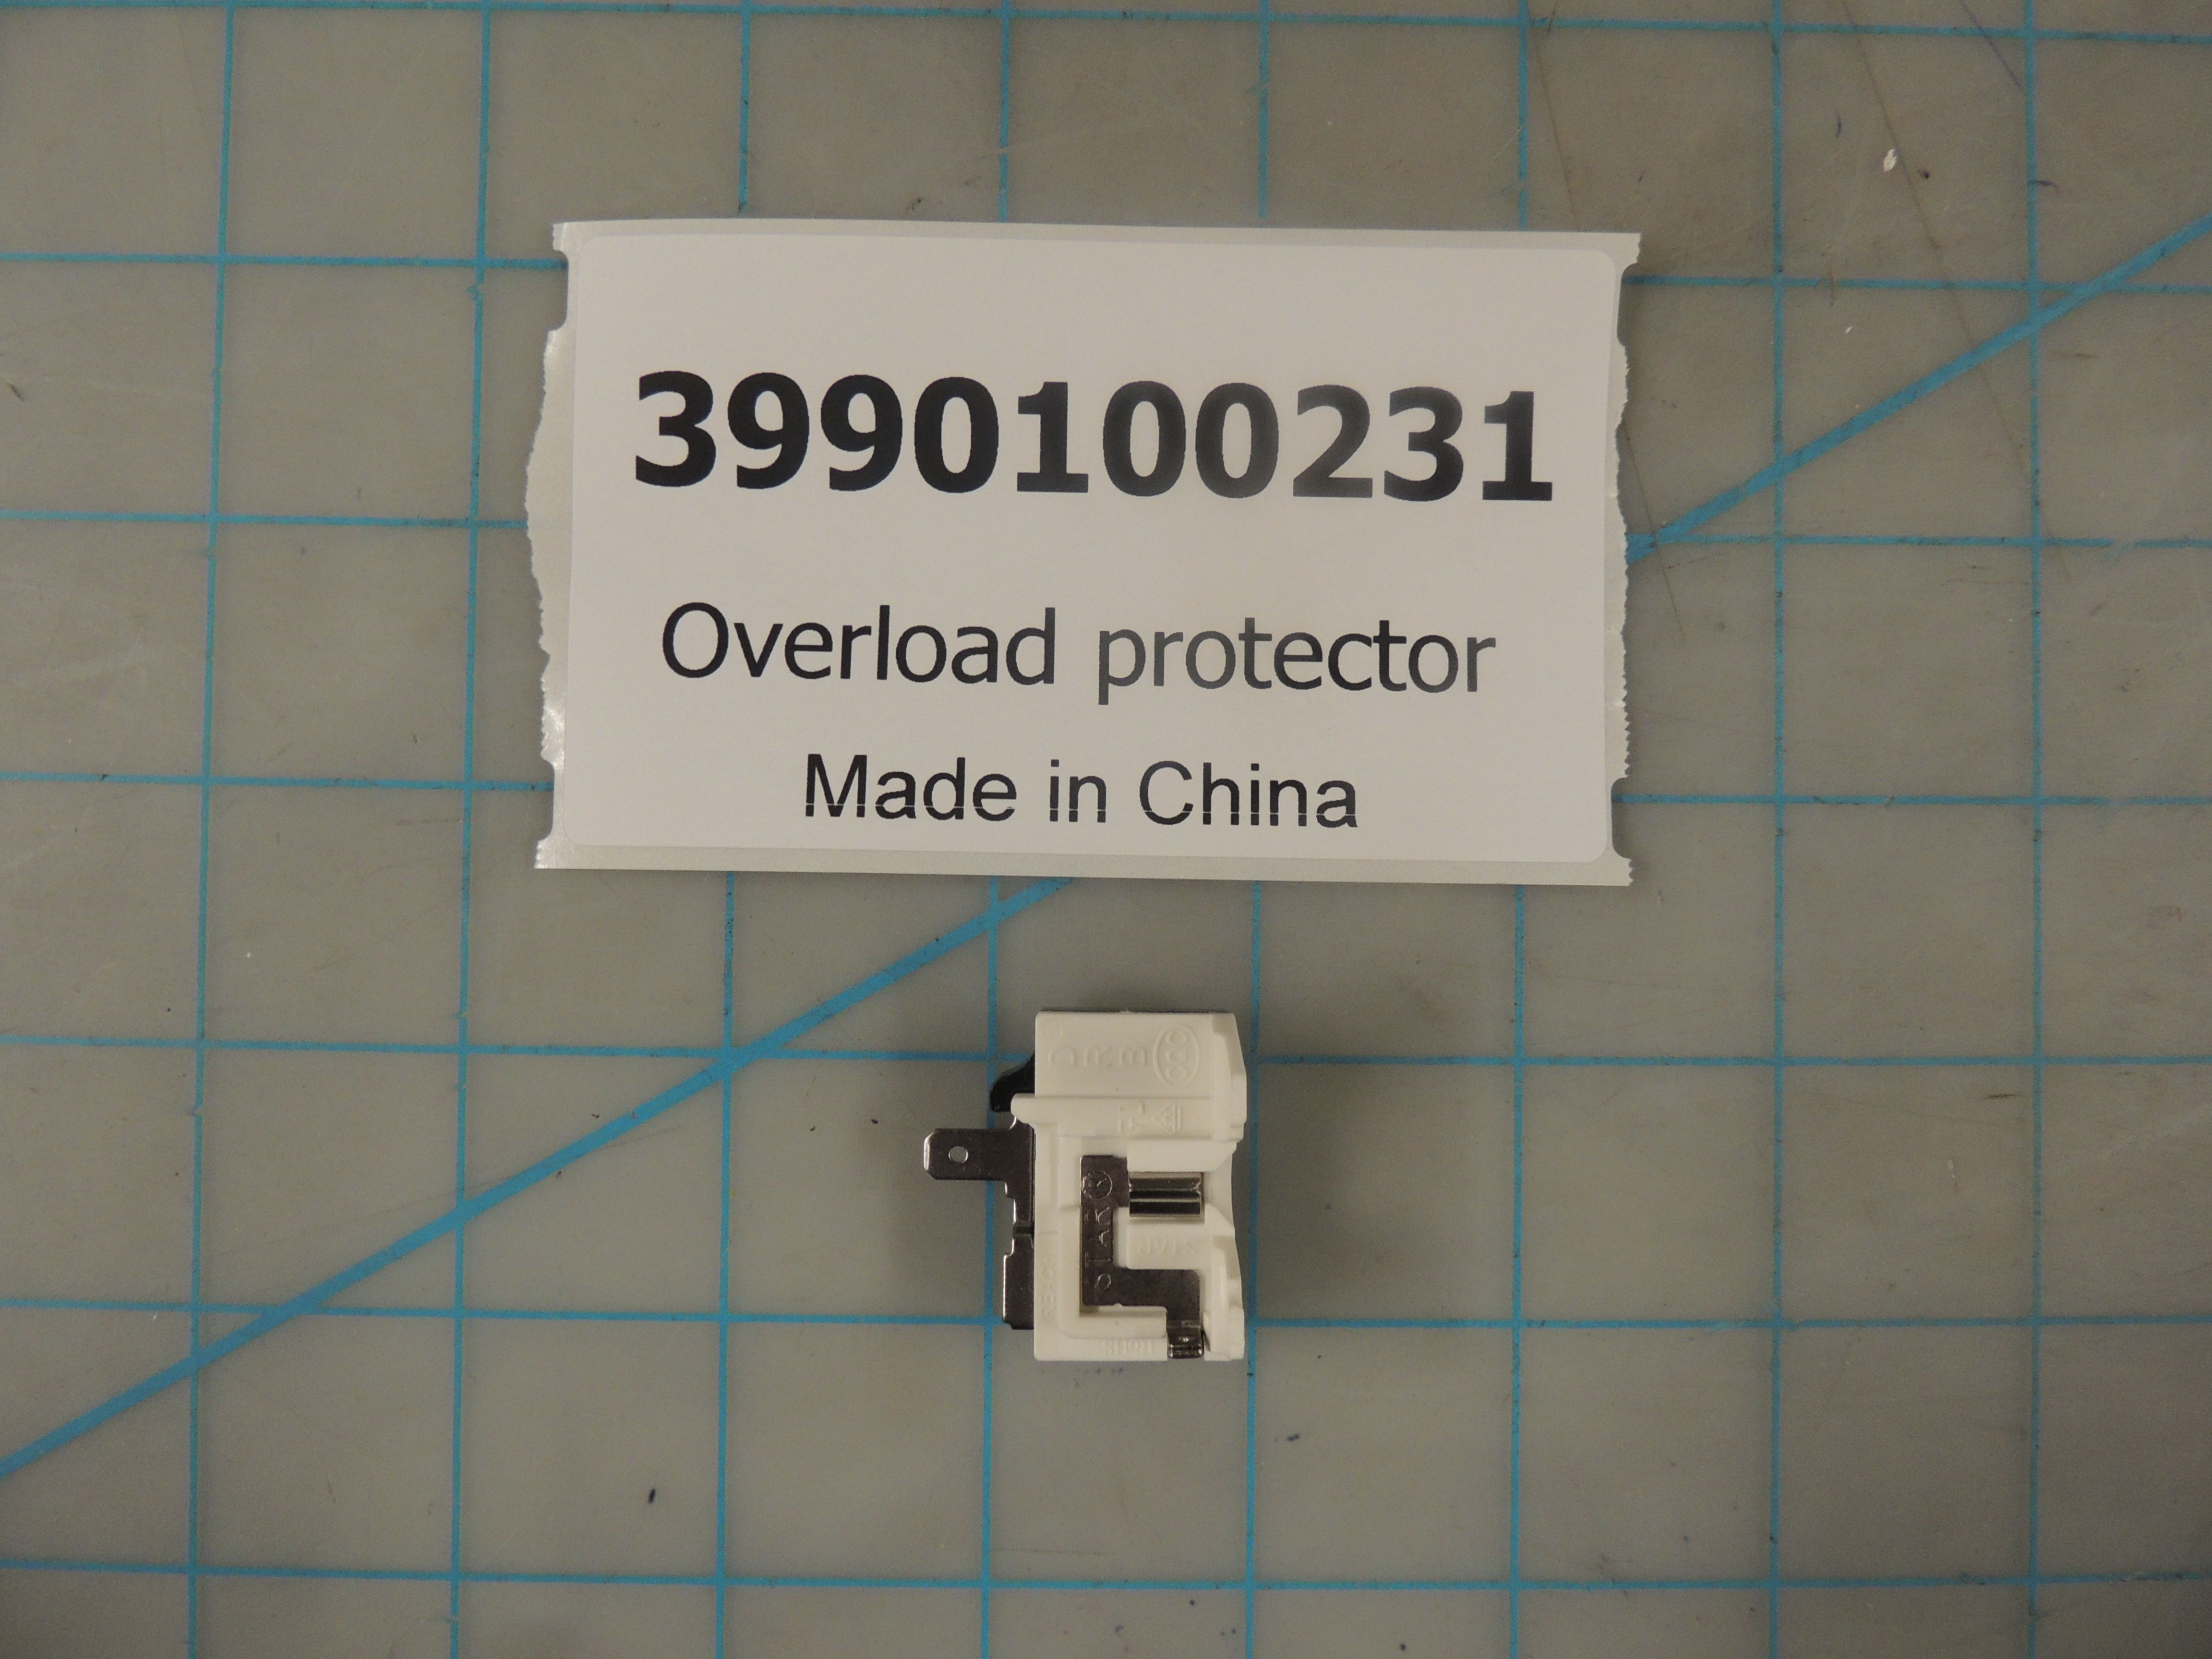 Overload protector